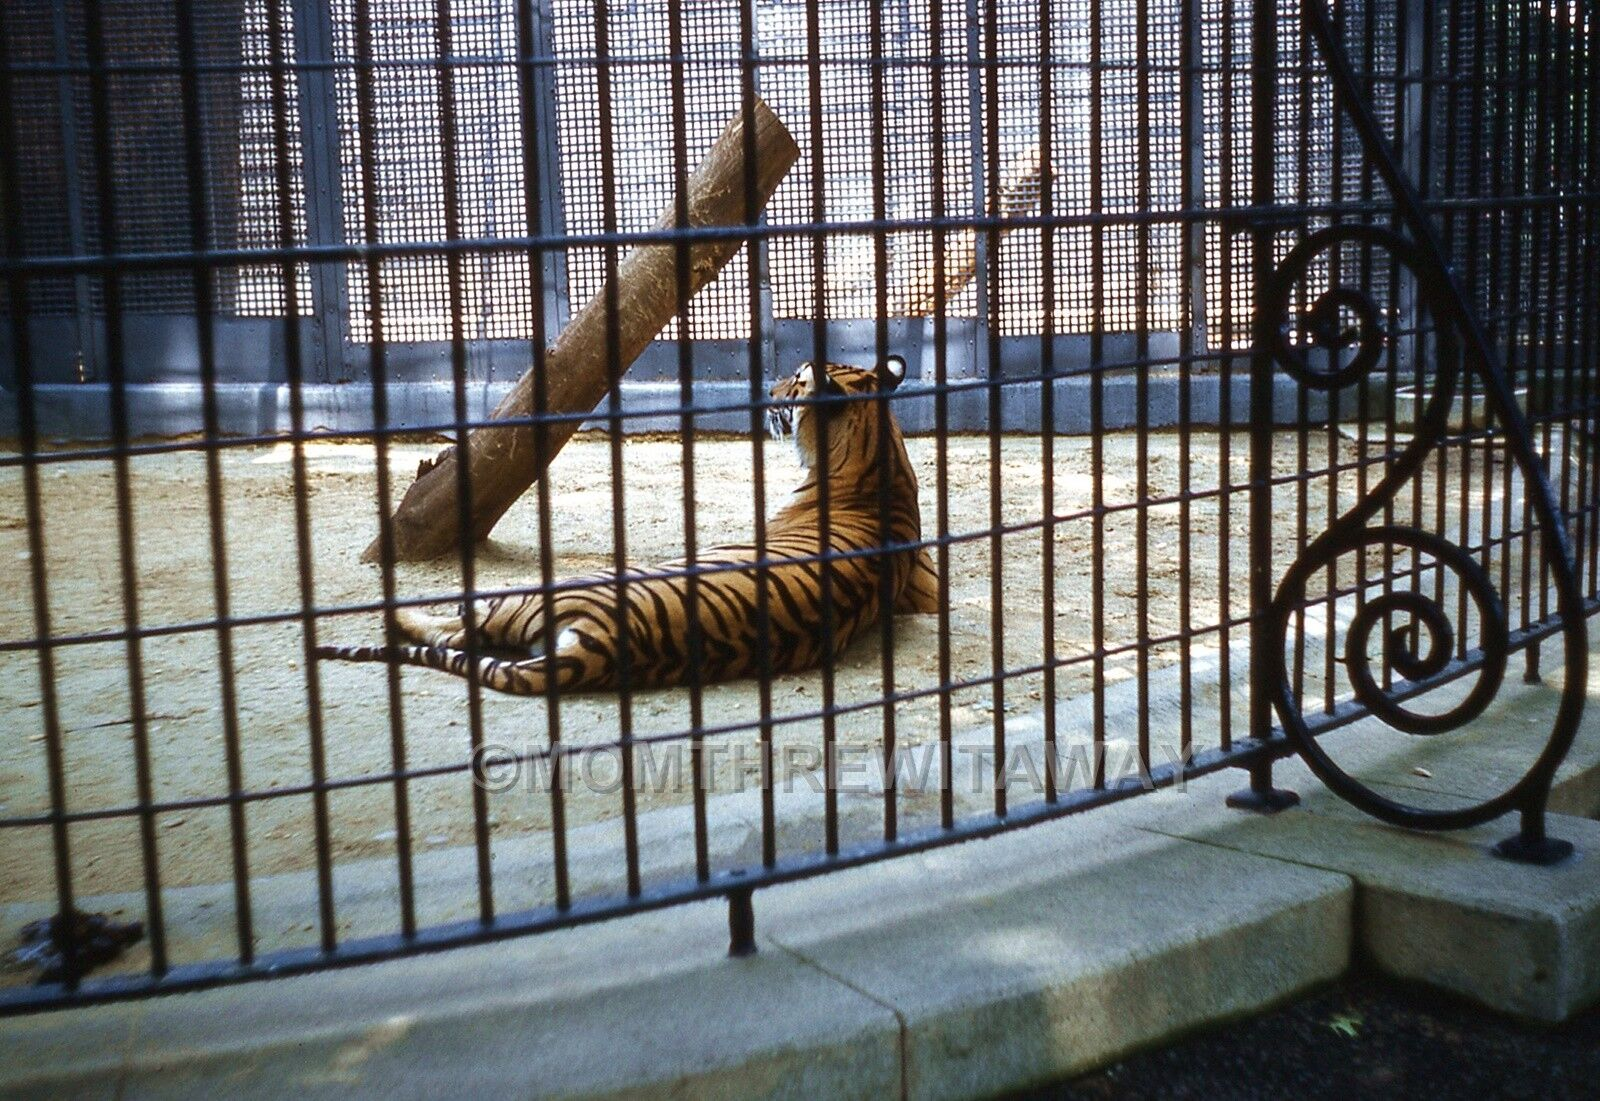 1960 COLOR SLIDE 1129 Washington DC National Zoo Big Cat Tiger in Cage